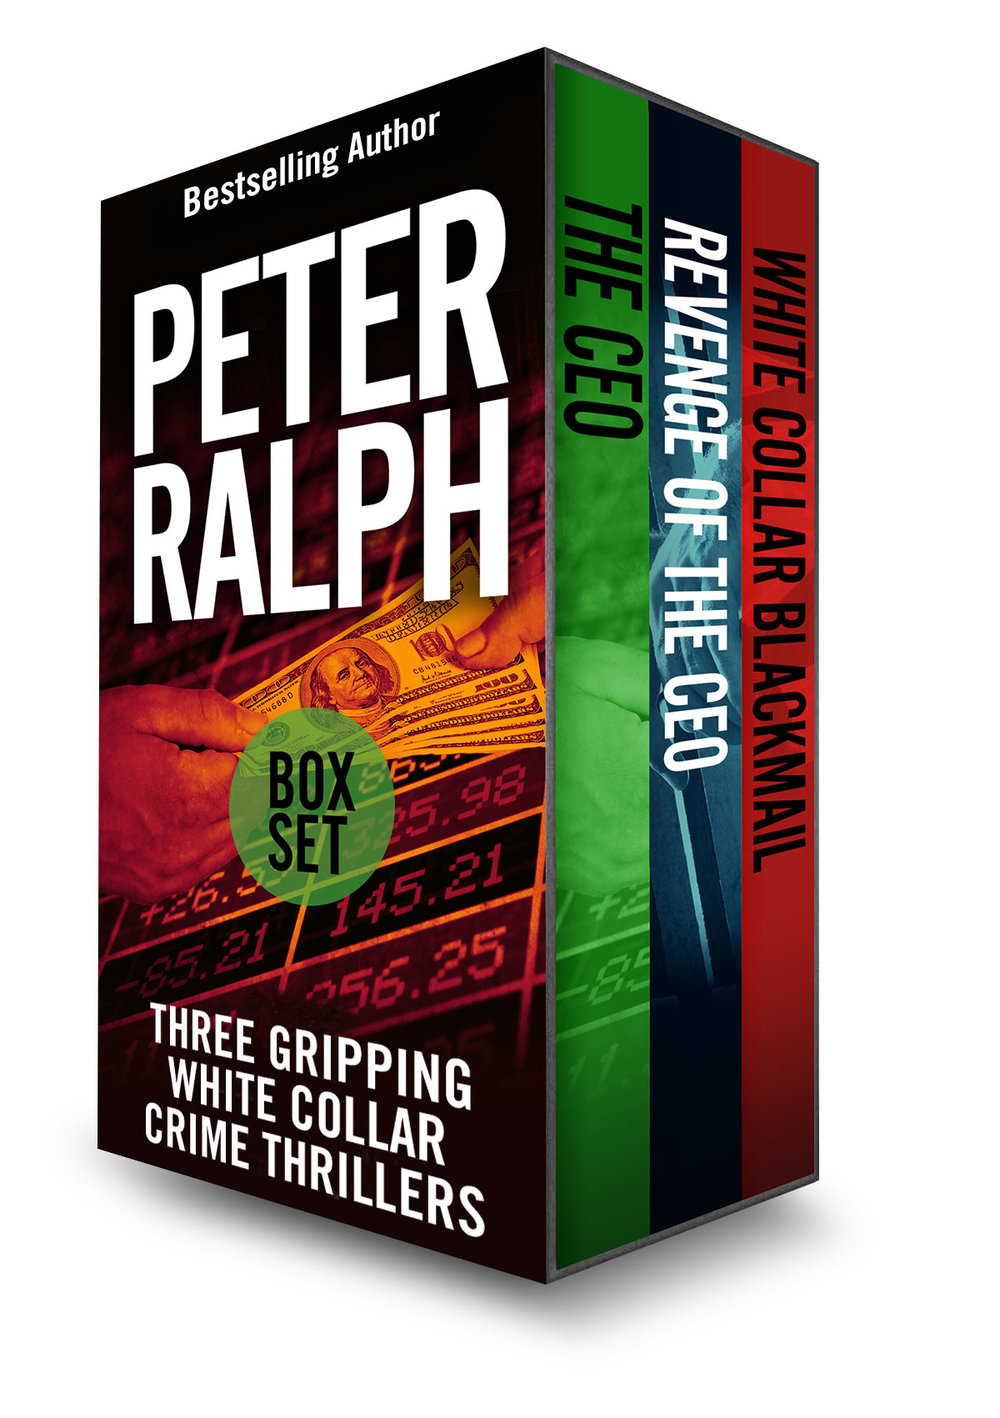 Peter-Ralph-box-set_three-titles.jpg